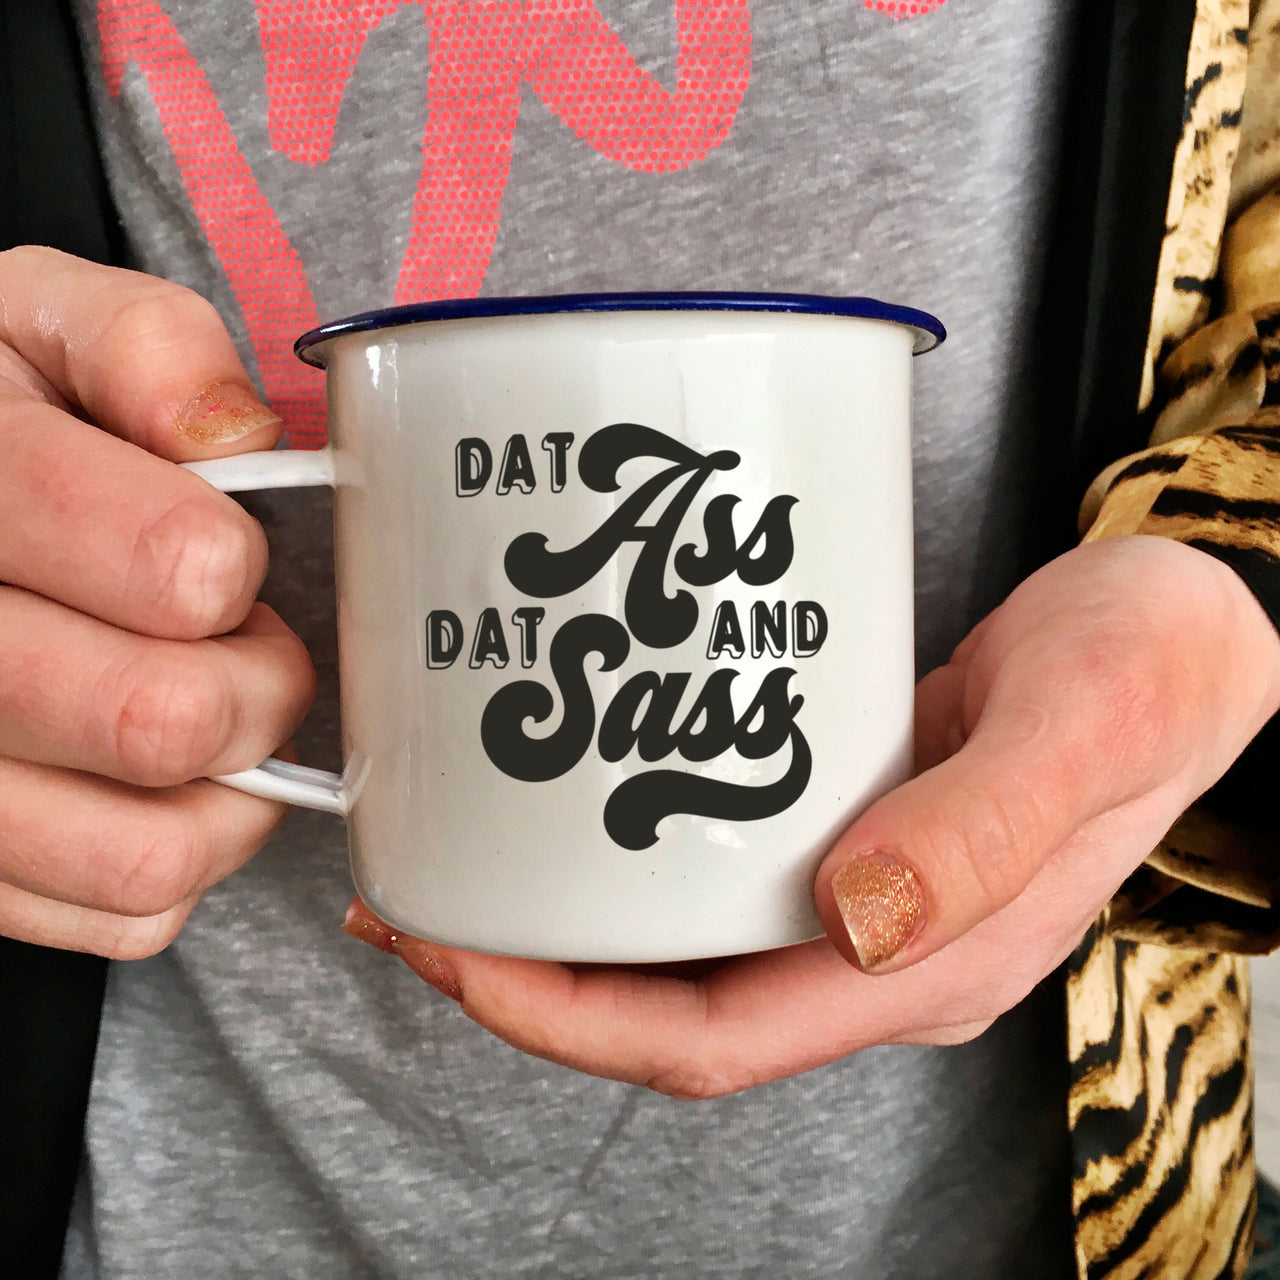 Funny and Romantic Enamel Camping Mug: Dat Ass and Dat Sass-Enamel Co.